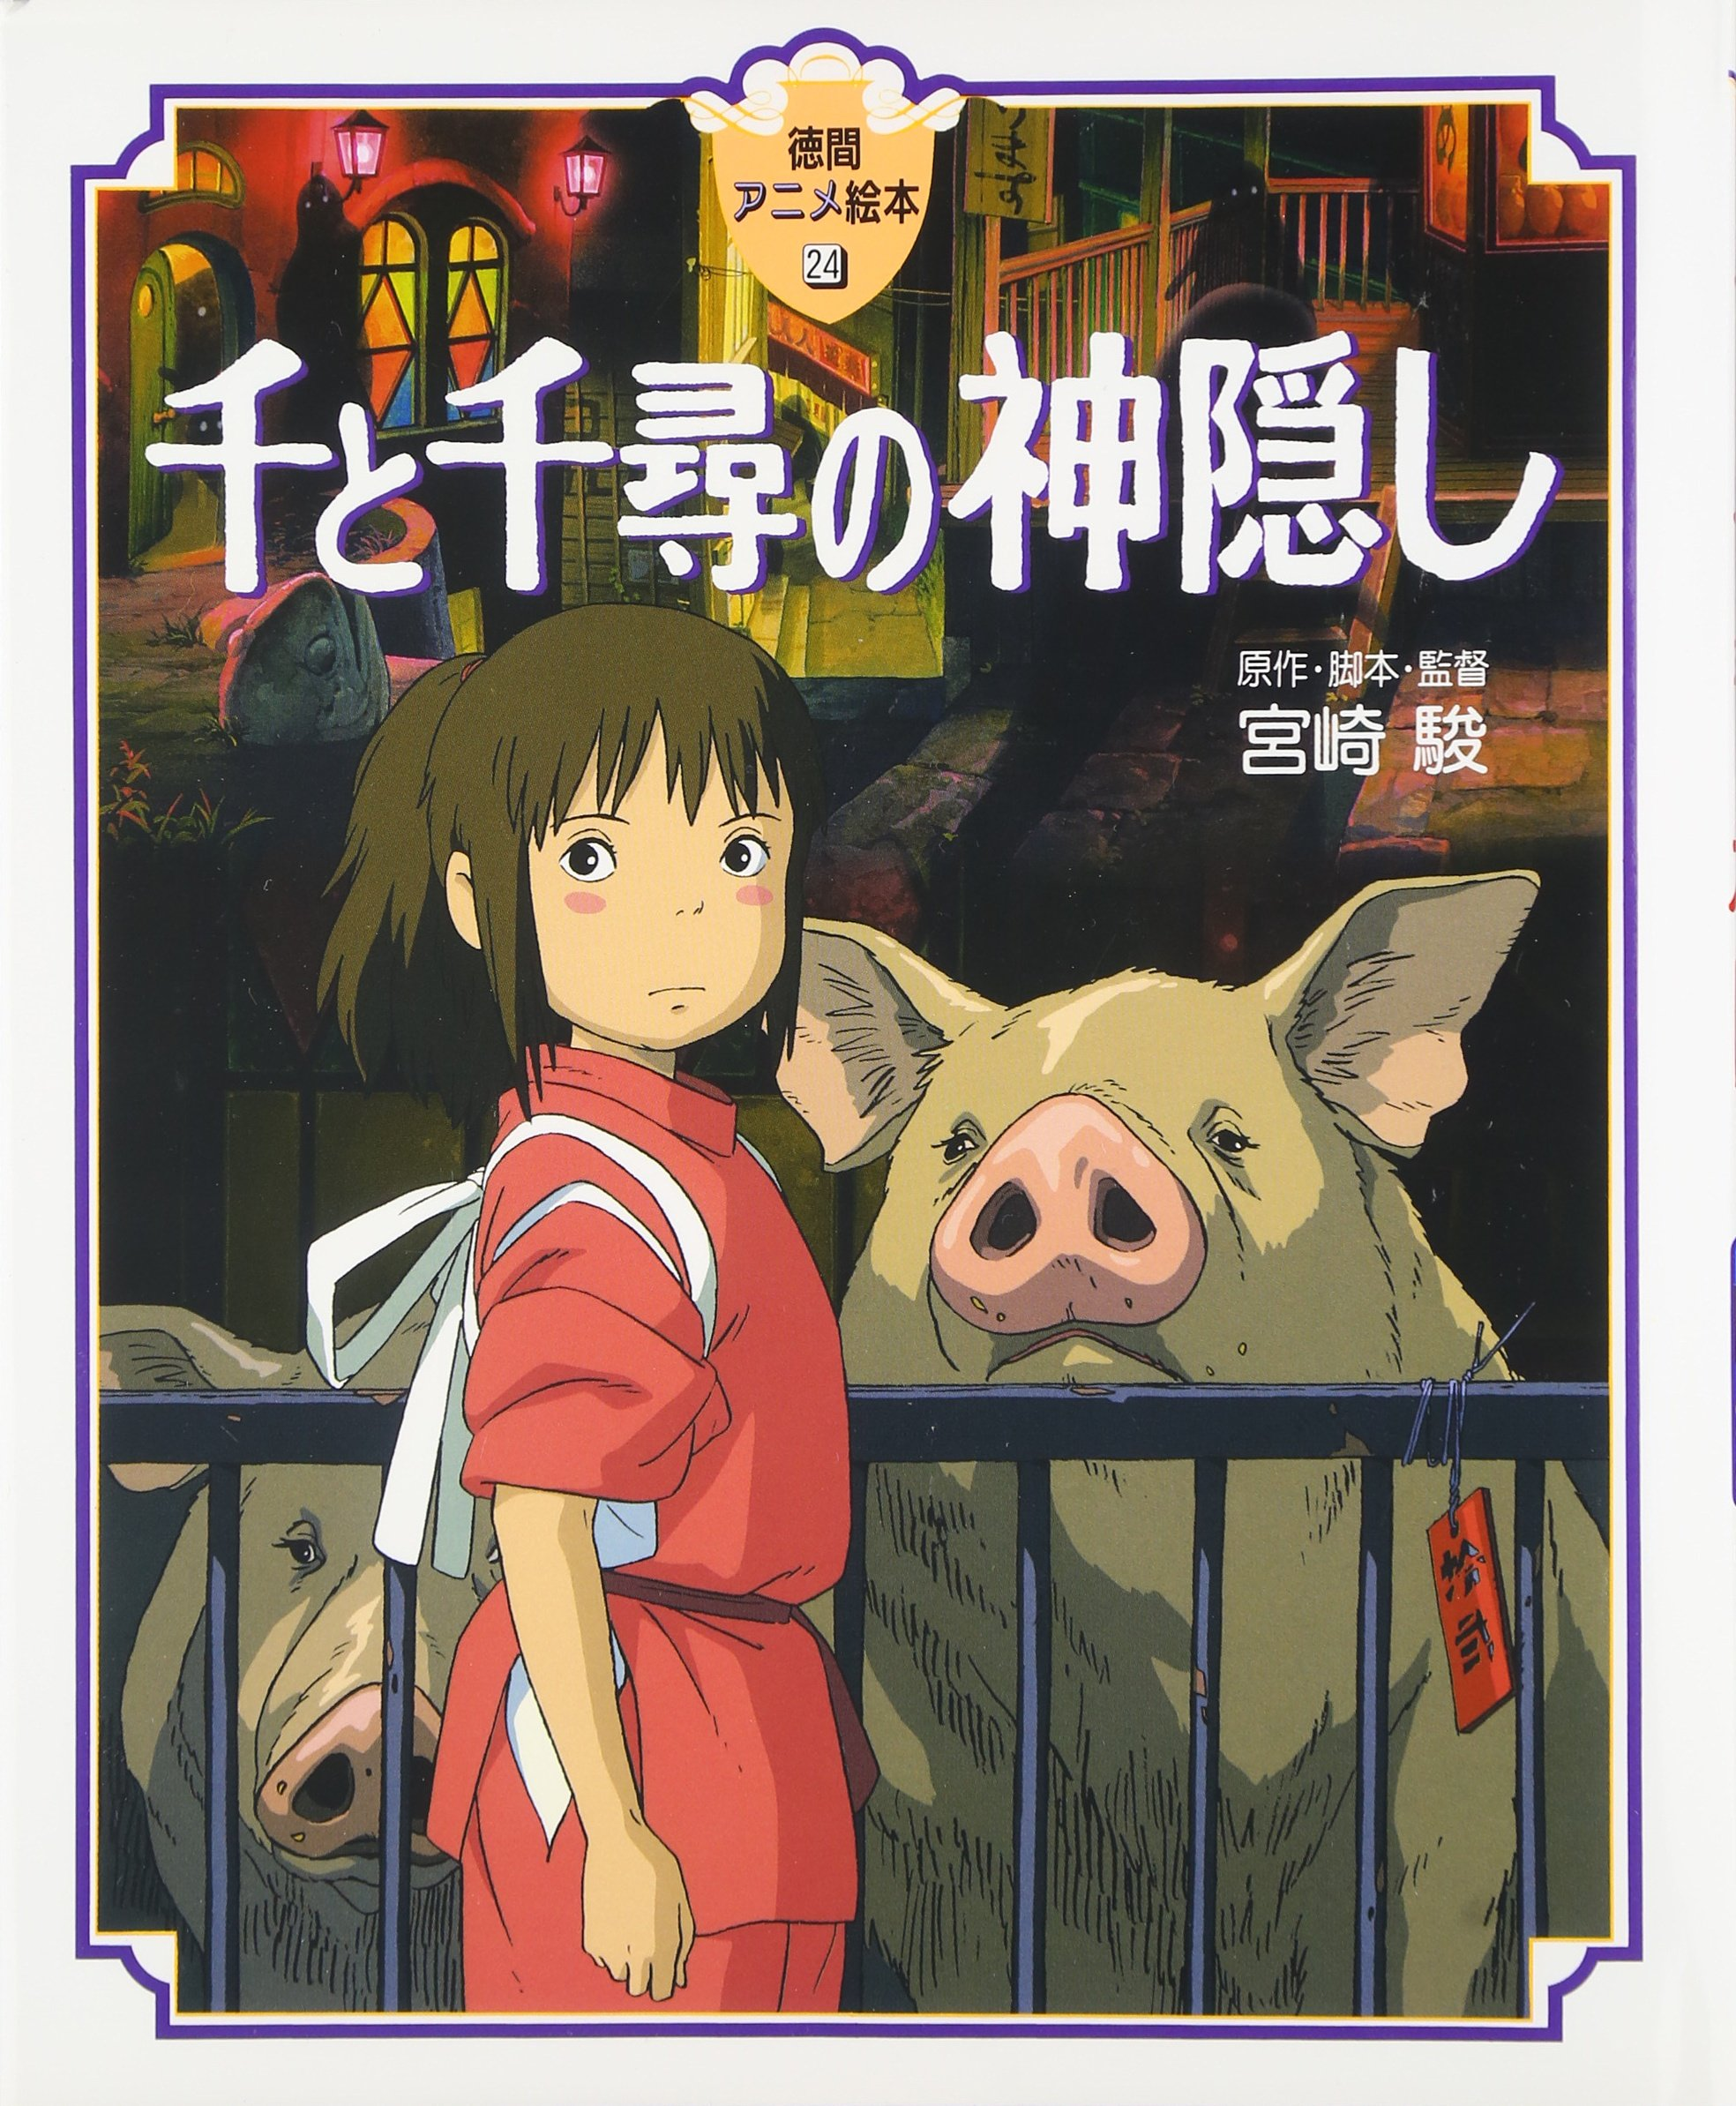 spirited away 1080p english dub